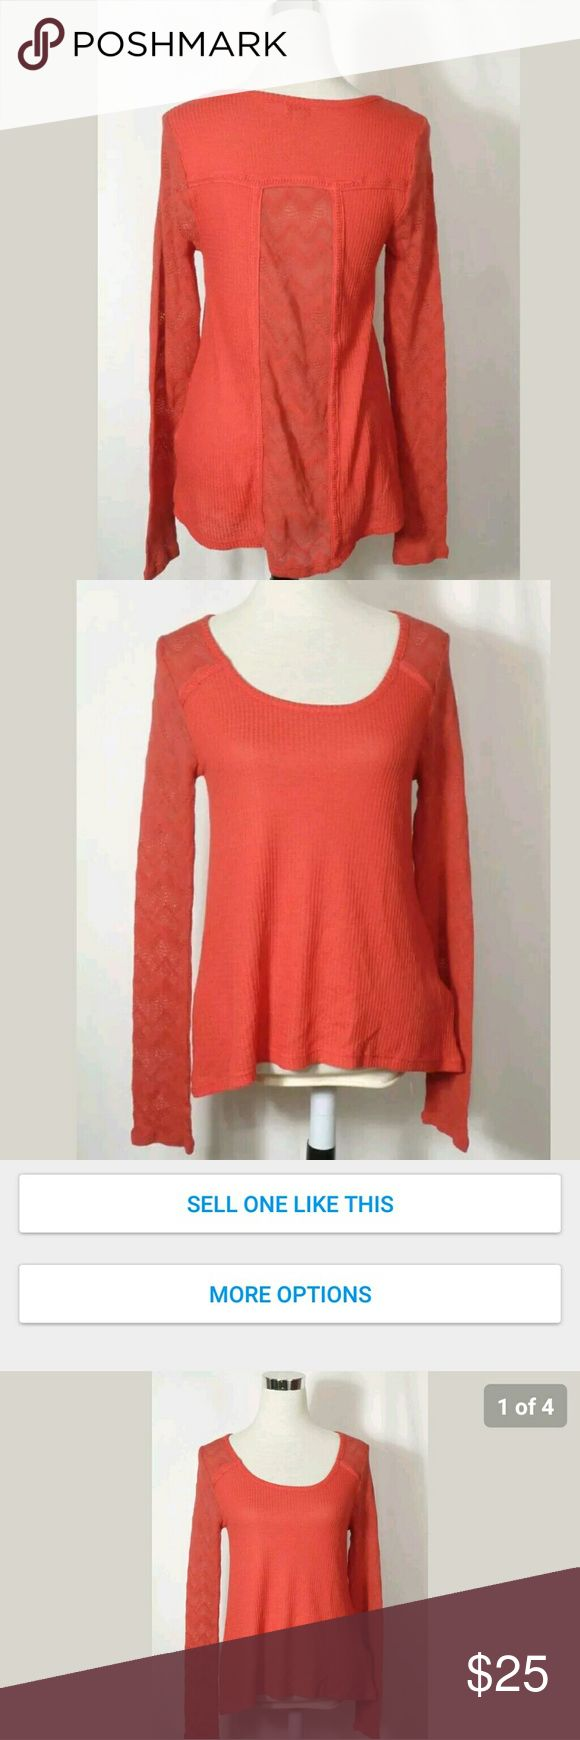 Lucky Brand Thermal Top Sz M Very comfortable pretty bright orange women's top. Size L. Lucky Brand Tops Tees - Long Sleeve